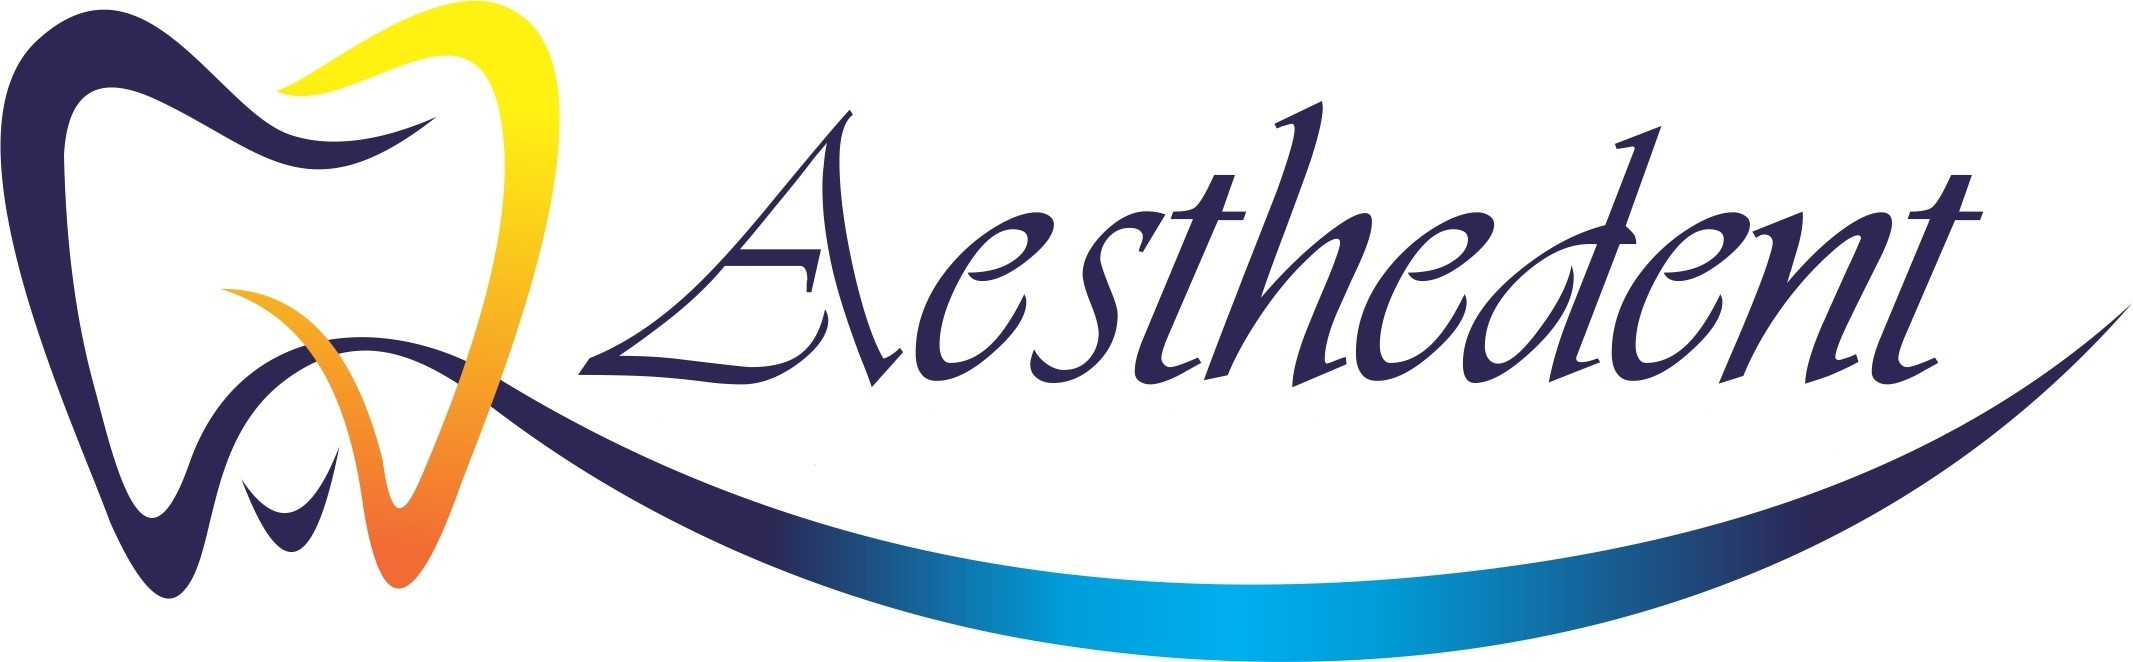 Aesthedent Multispeciality Dental Clinic and Implant Centre